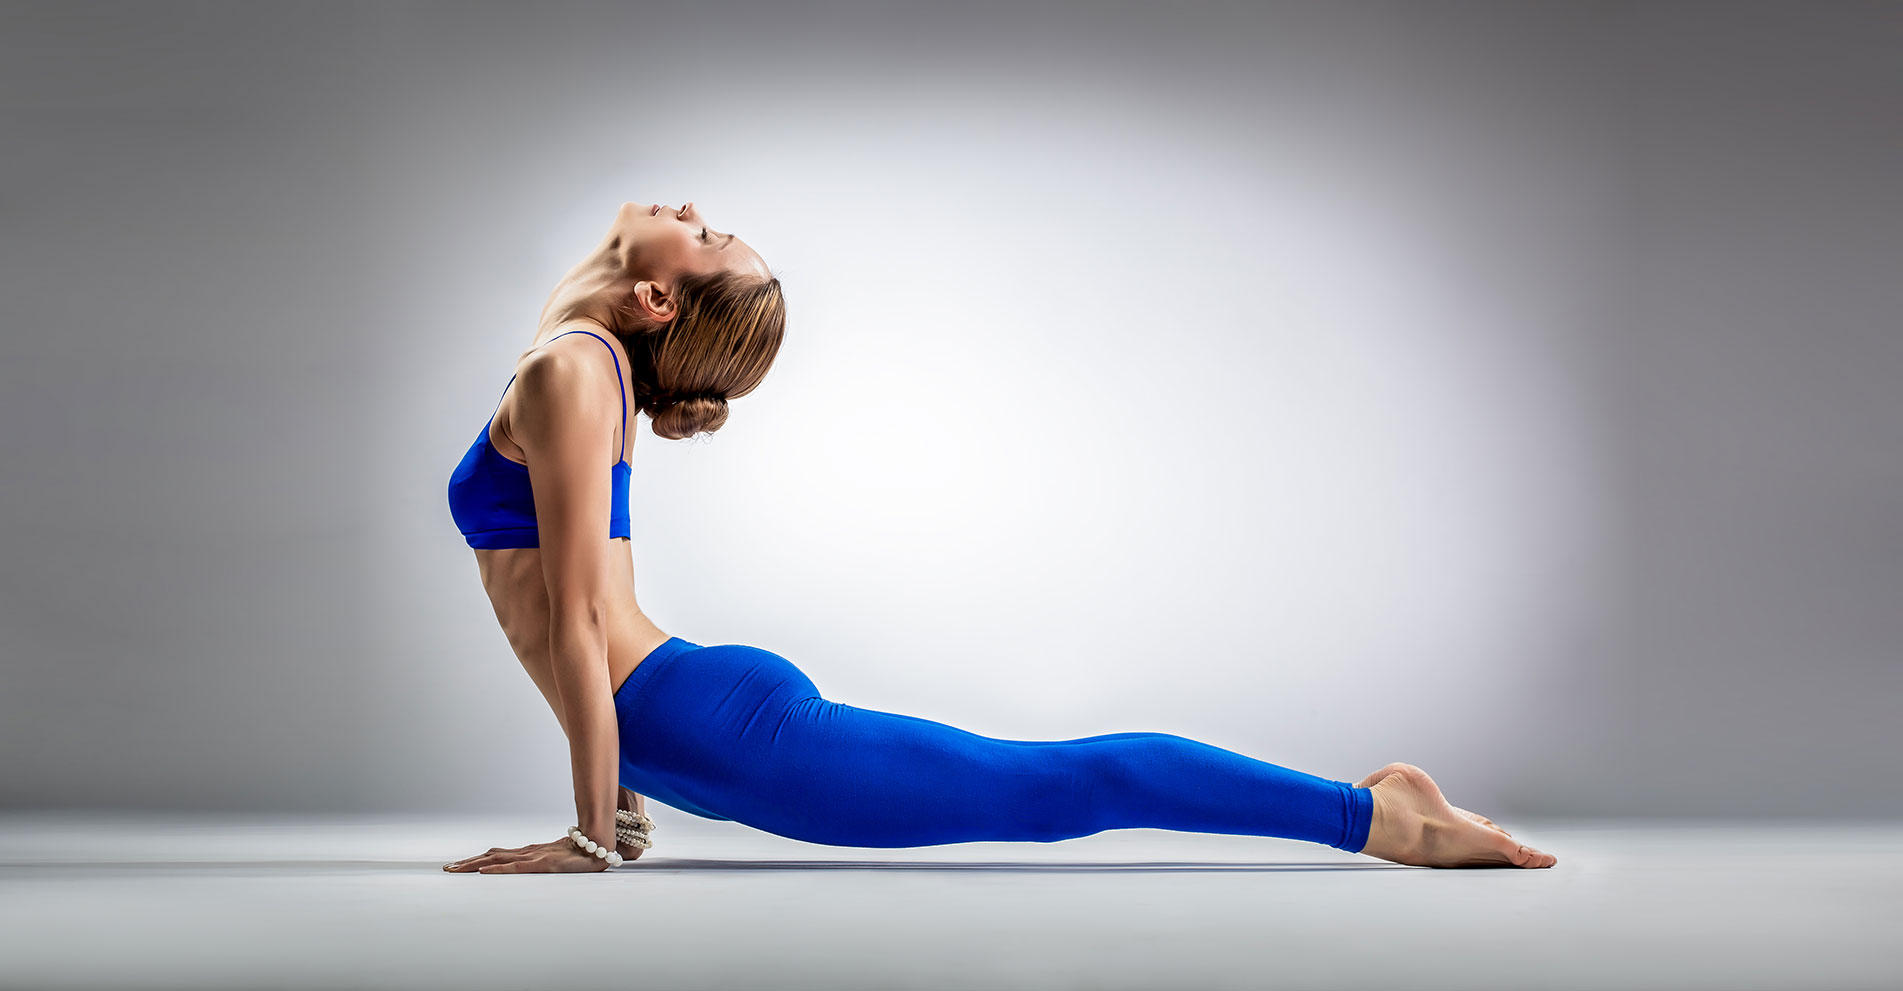 Yoga Is yoga better for fitness then weight training? 3